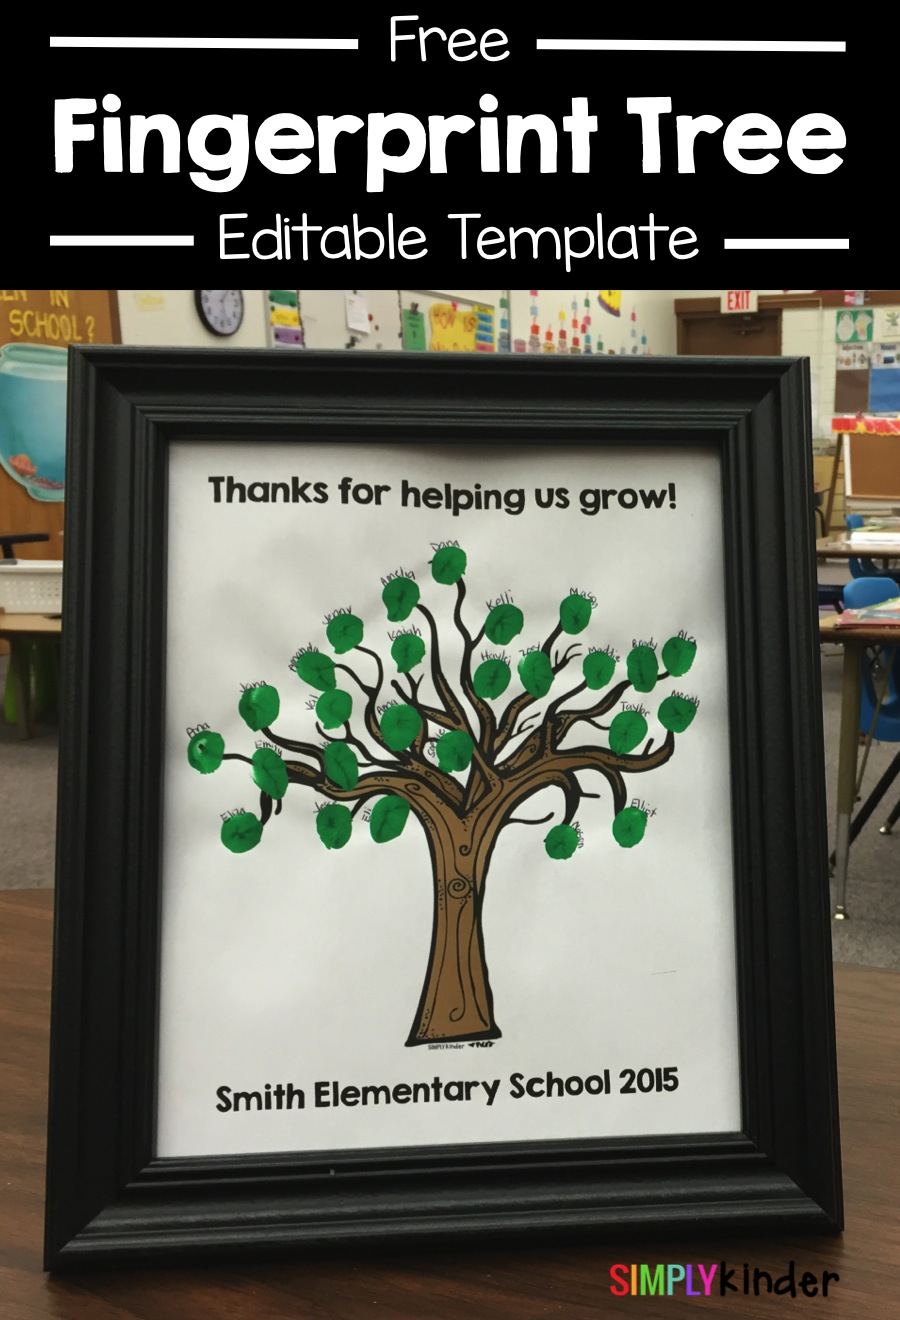 Free editable Finger Print Tree gift for volunteers or student teachers!